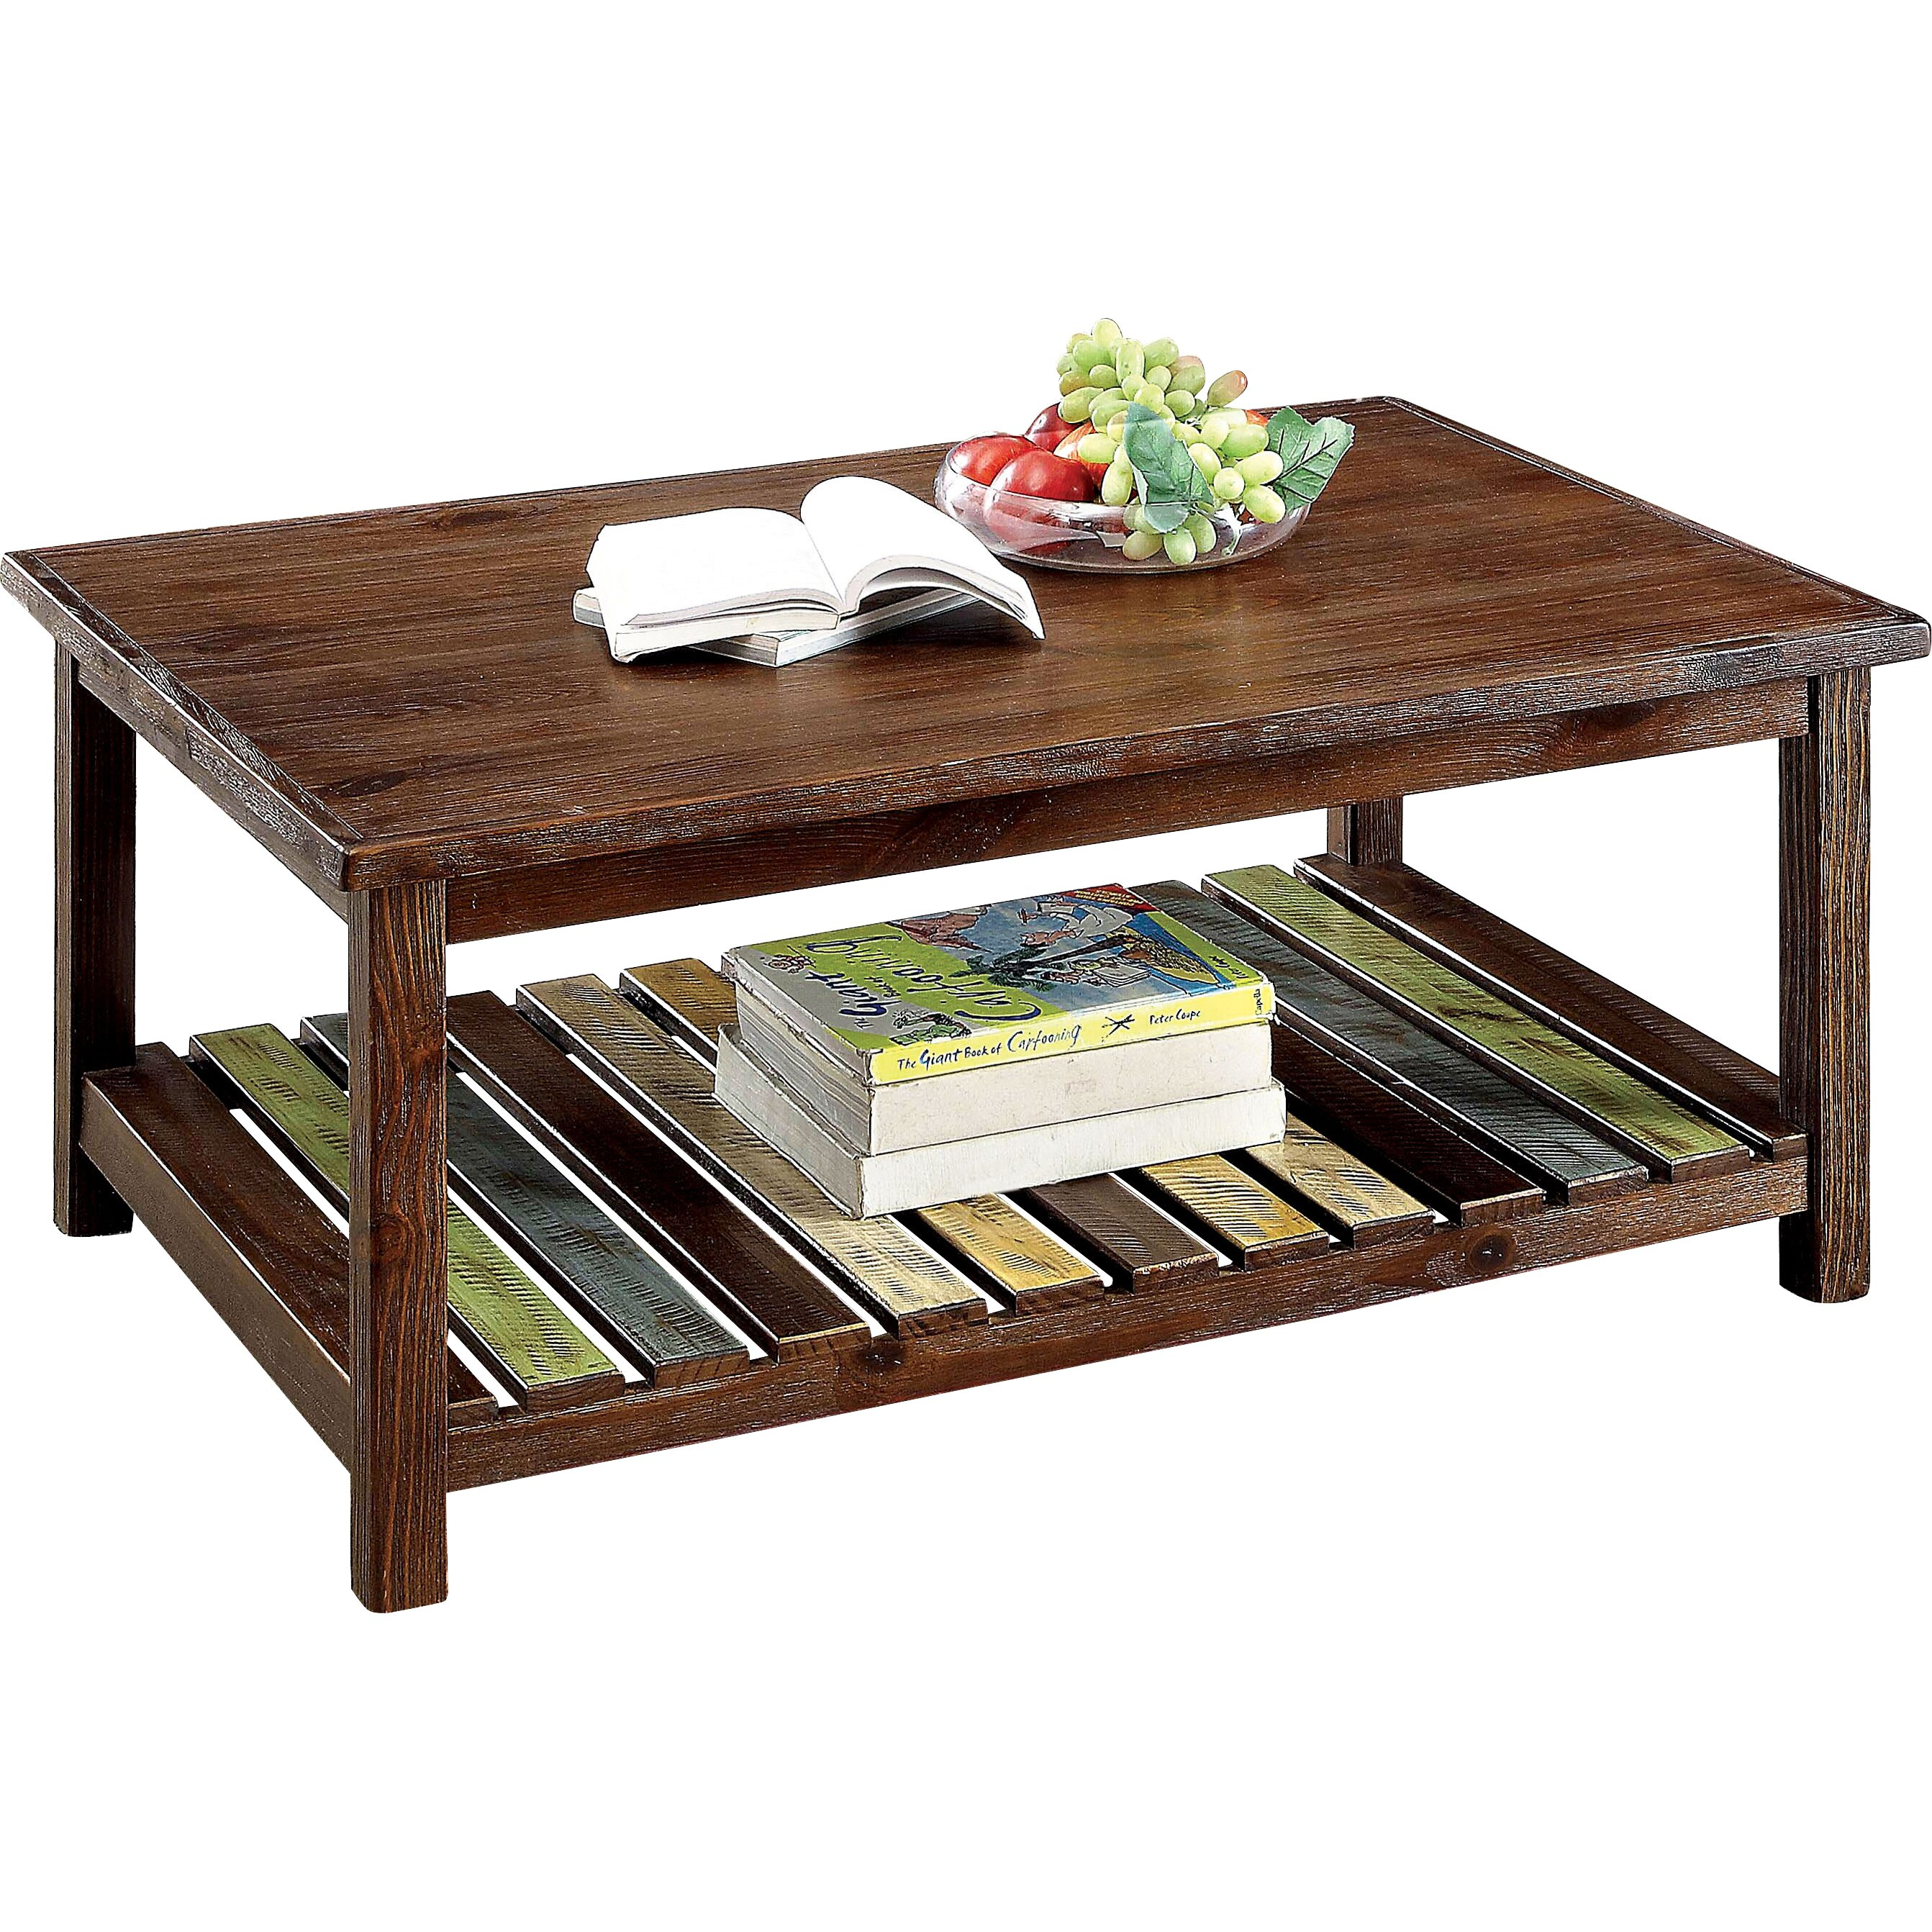 Modern Farmhouse Coffee Table: Laurel Foundry Modern Farmhouse Fenwick Coffee Table